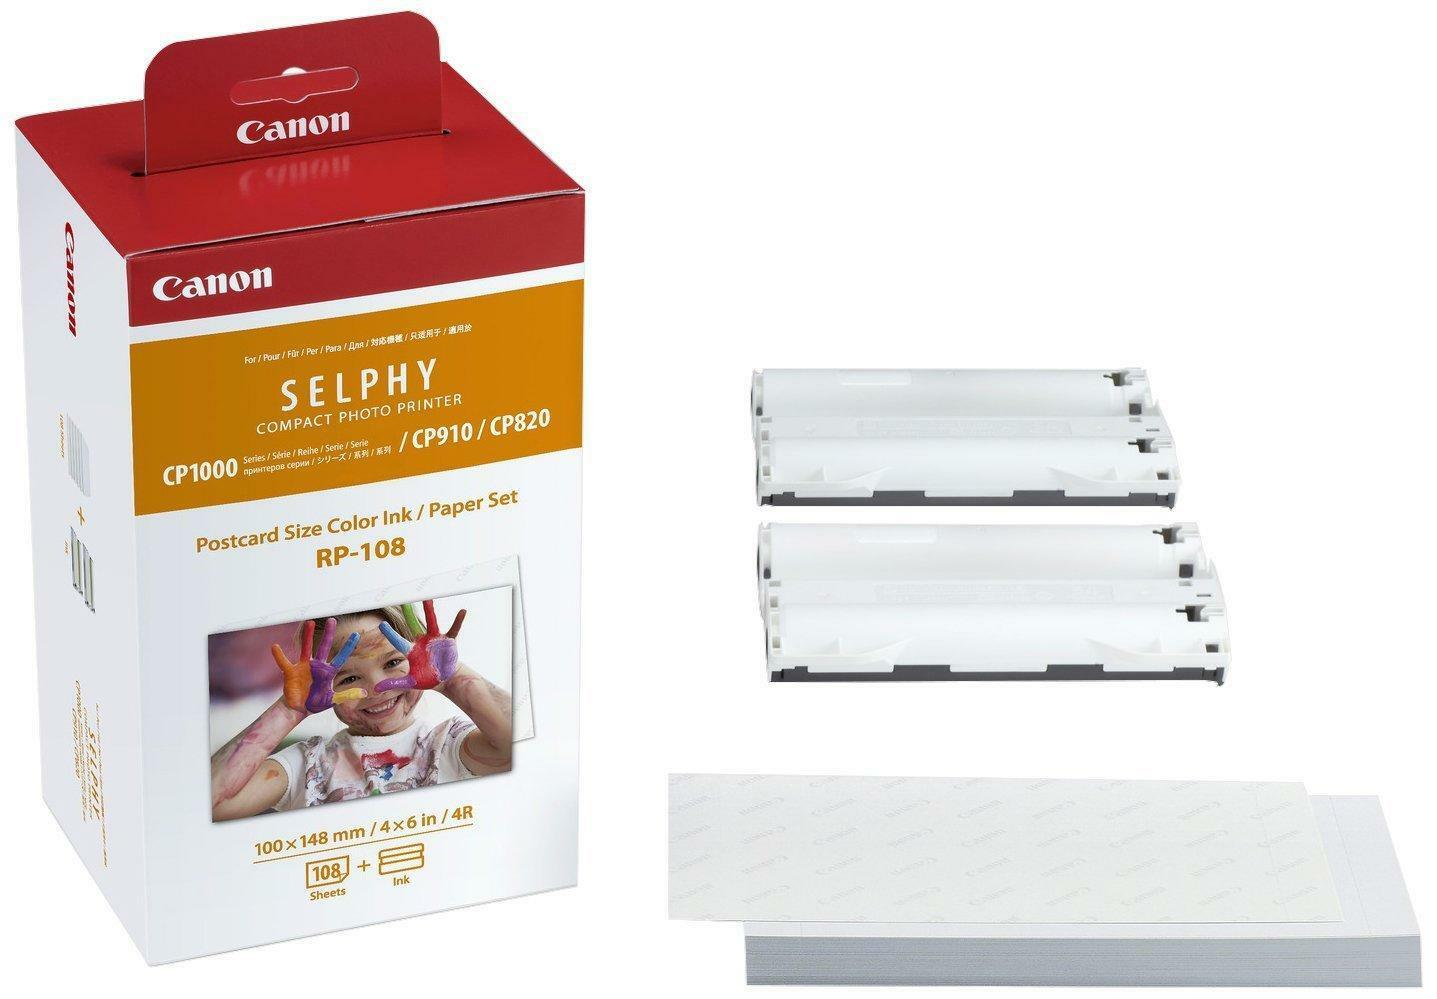 2 Ink Toners // 108 Paper Sheets Compatible with Canon SELPHY CP820 CP1300 Compact Printers CP1200 CP1000 Canon RP-108 // RP108 Color Ink Paper Set CP910